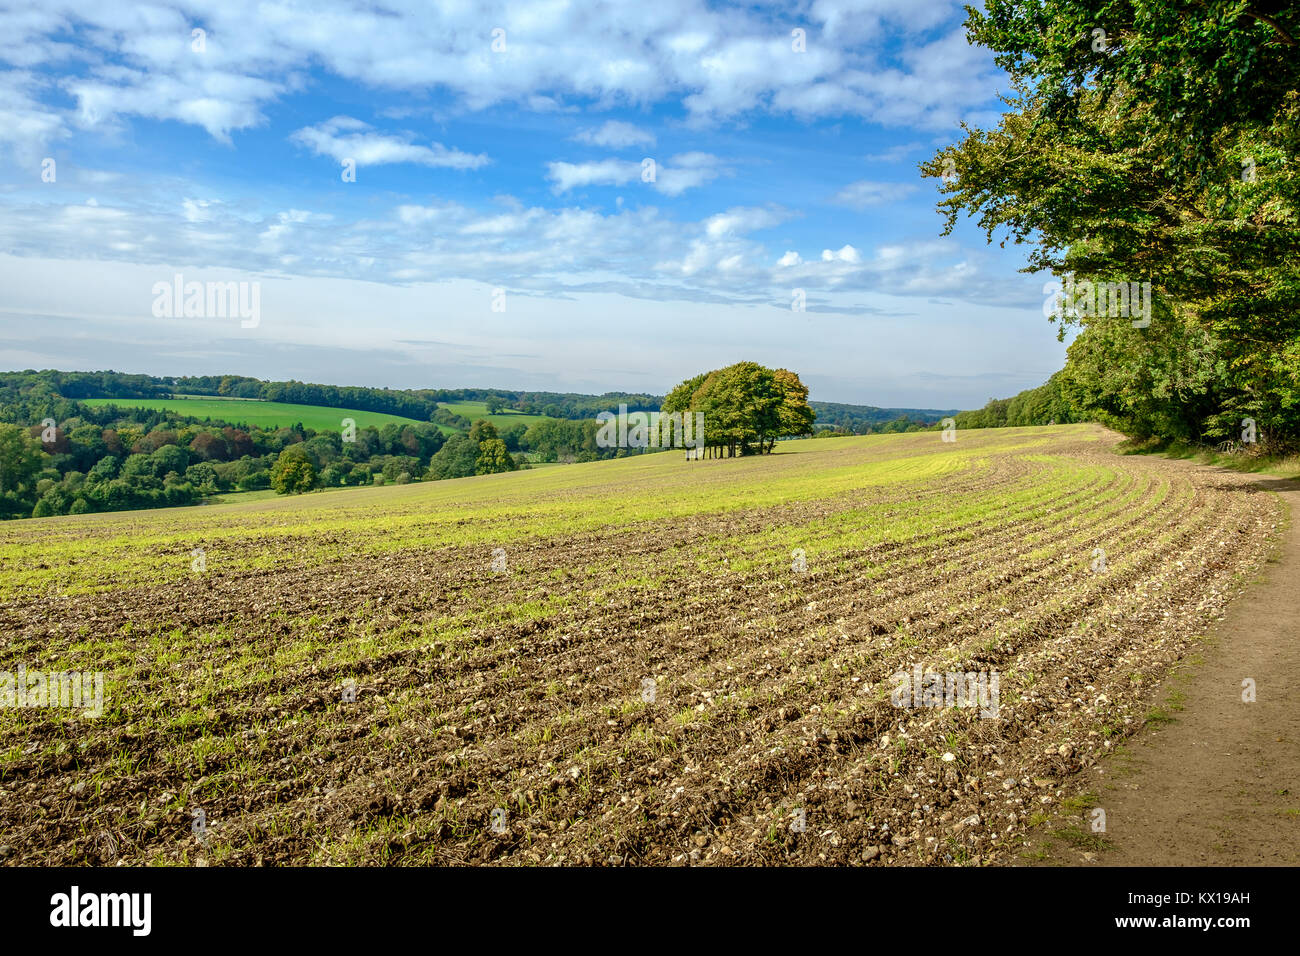 Agricultural field along a right of way in the Chilterns, Chess Valley. - Stock Image